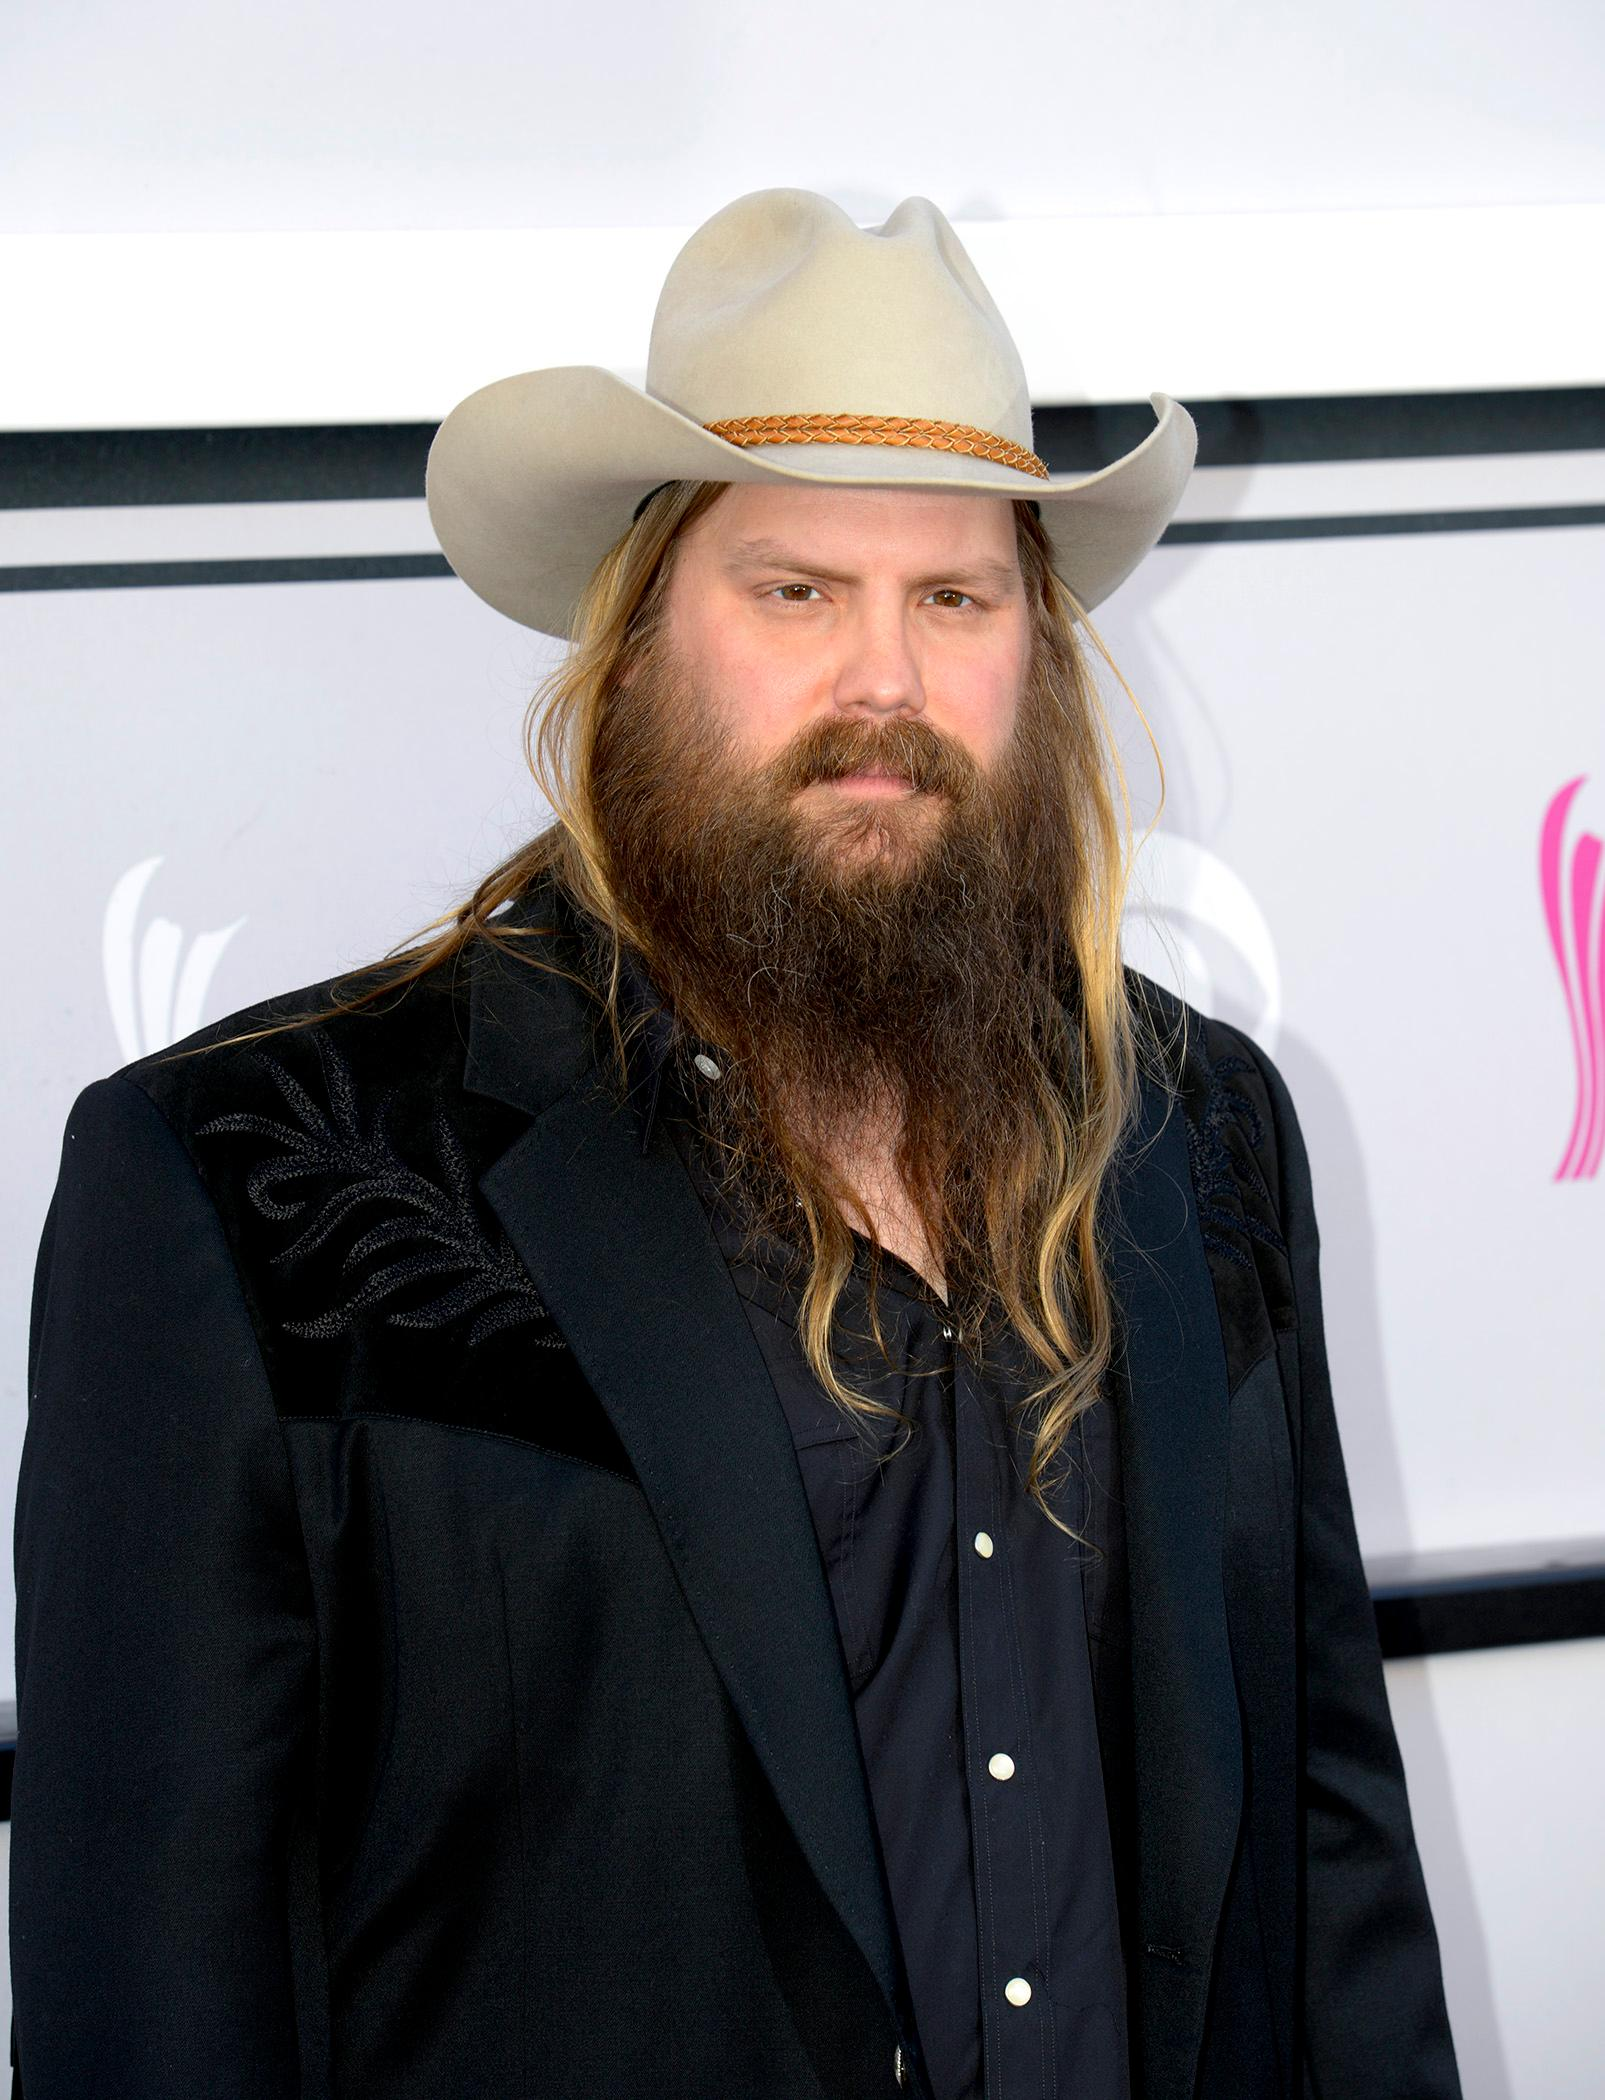 Singer Chris Stapleton Nominee for Male Vocalist of the year and Song of the Year walks the Academy of Country Music Awards red carpet at T-Mobile Arena. Sunday, April 2, 2017. (Glenn Pinkerton/ Las Vegas News Bureau)